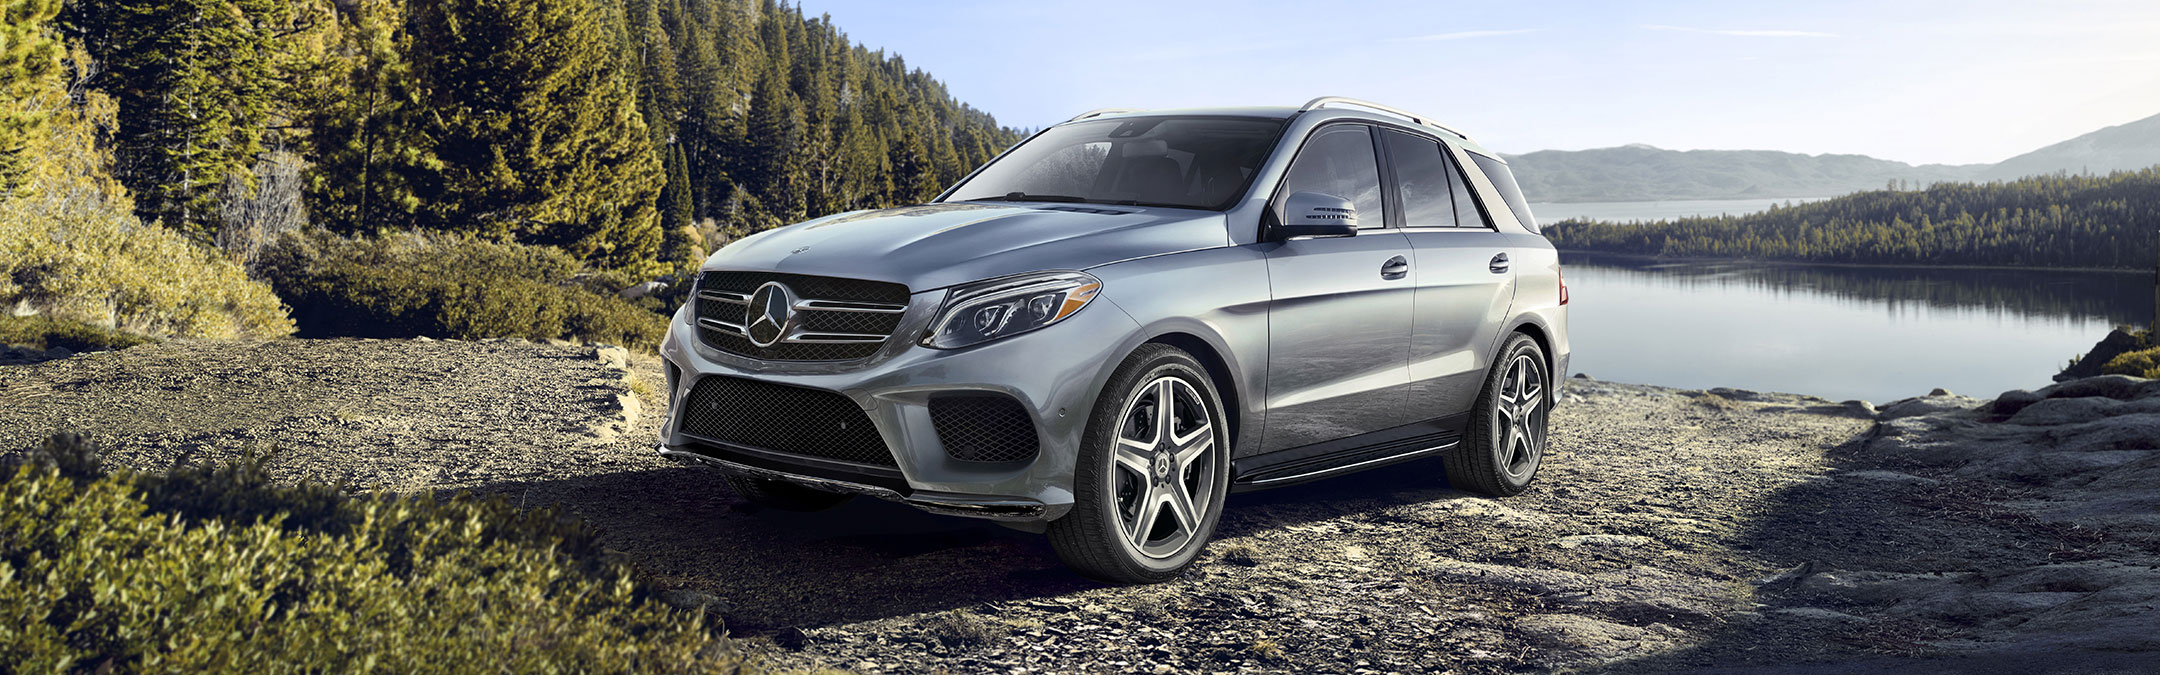 2018 GLE SUV Design